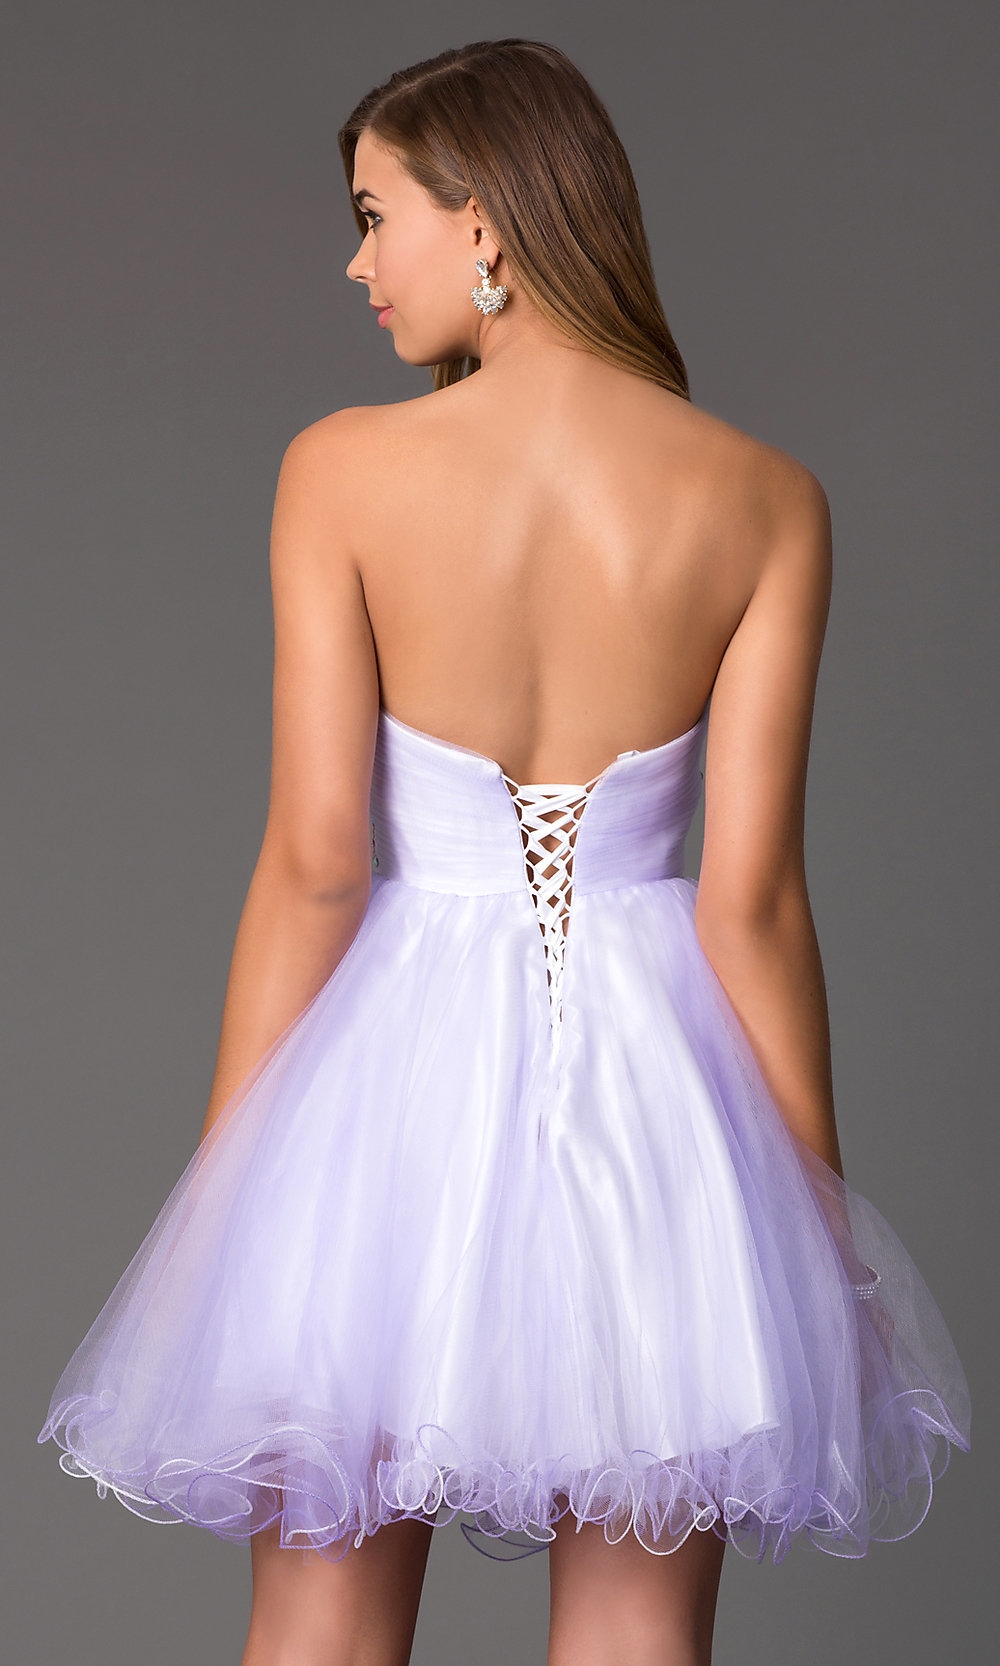 Short Strapless Prom Dress, Corset Back Party Dress